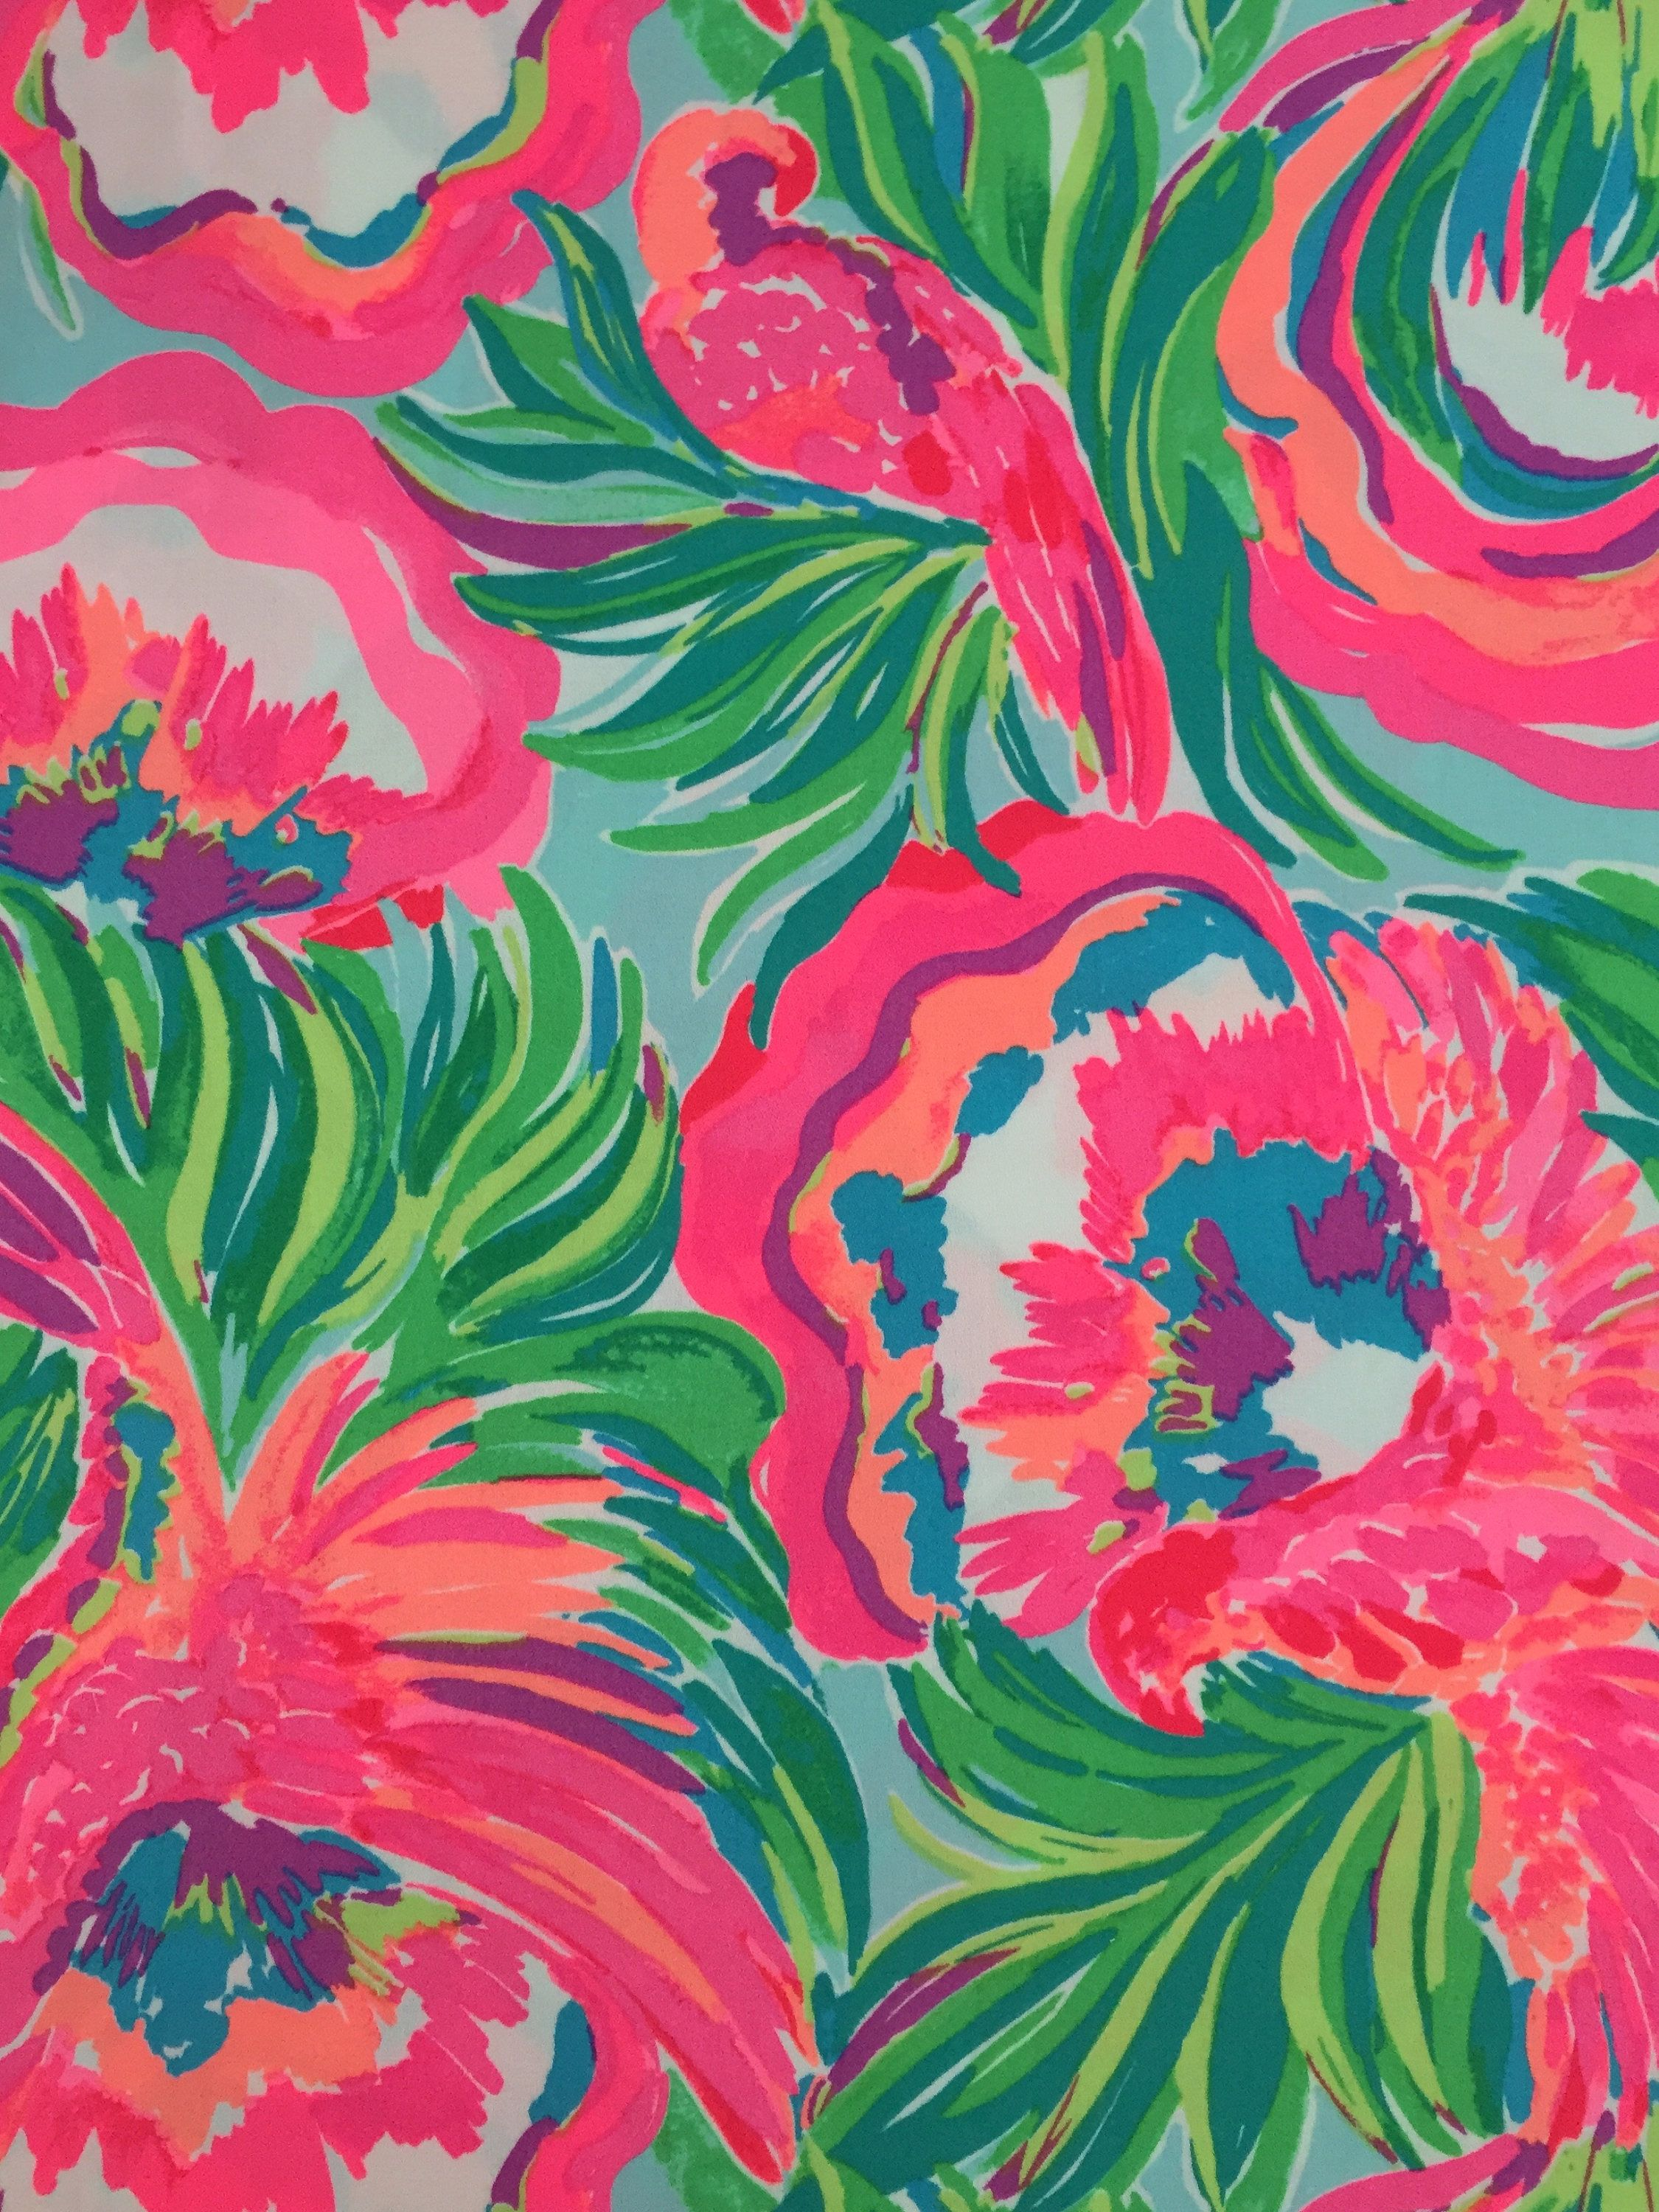 Hairy Blue Paradise Bound Cotton Blend Fabric Square Spring Lilly Pulitzer Blue Paradise Bound Cotton Blend Fabric Square Lilly Pulitzer Fabric Hobby Lobby Lilly Pulitzer Fabrics By Yard houzz-02 Lilly Pulitzer Fabric